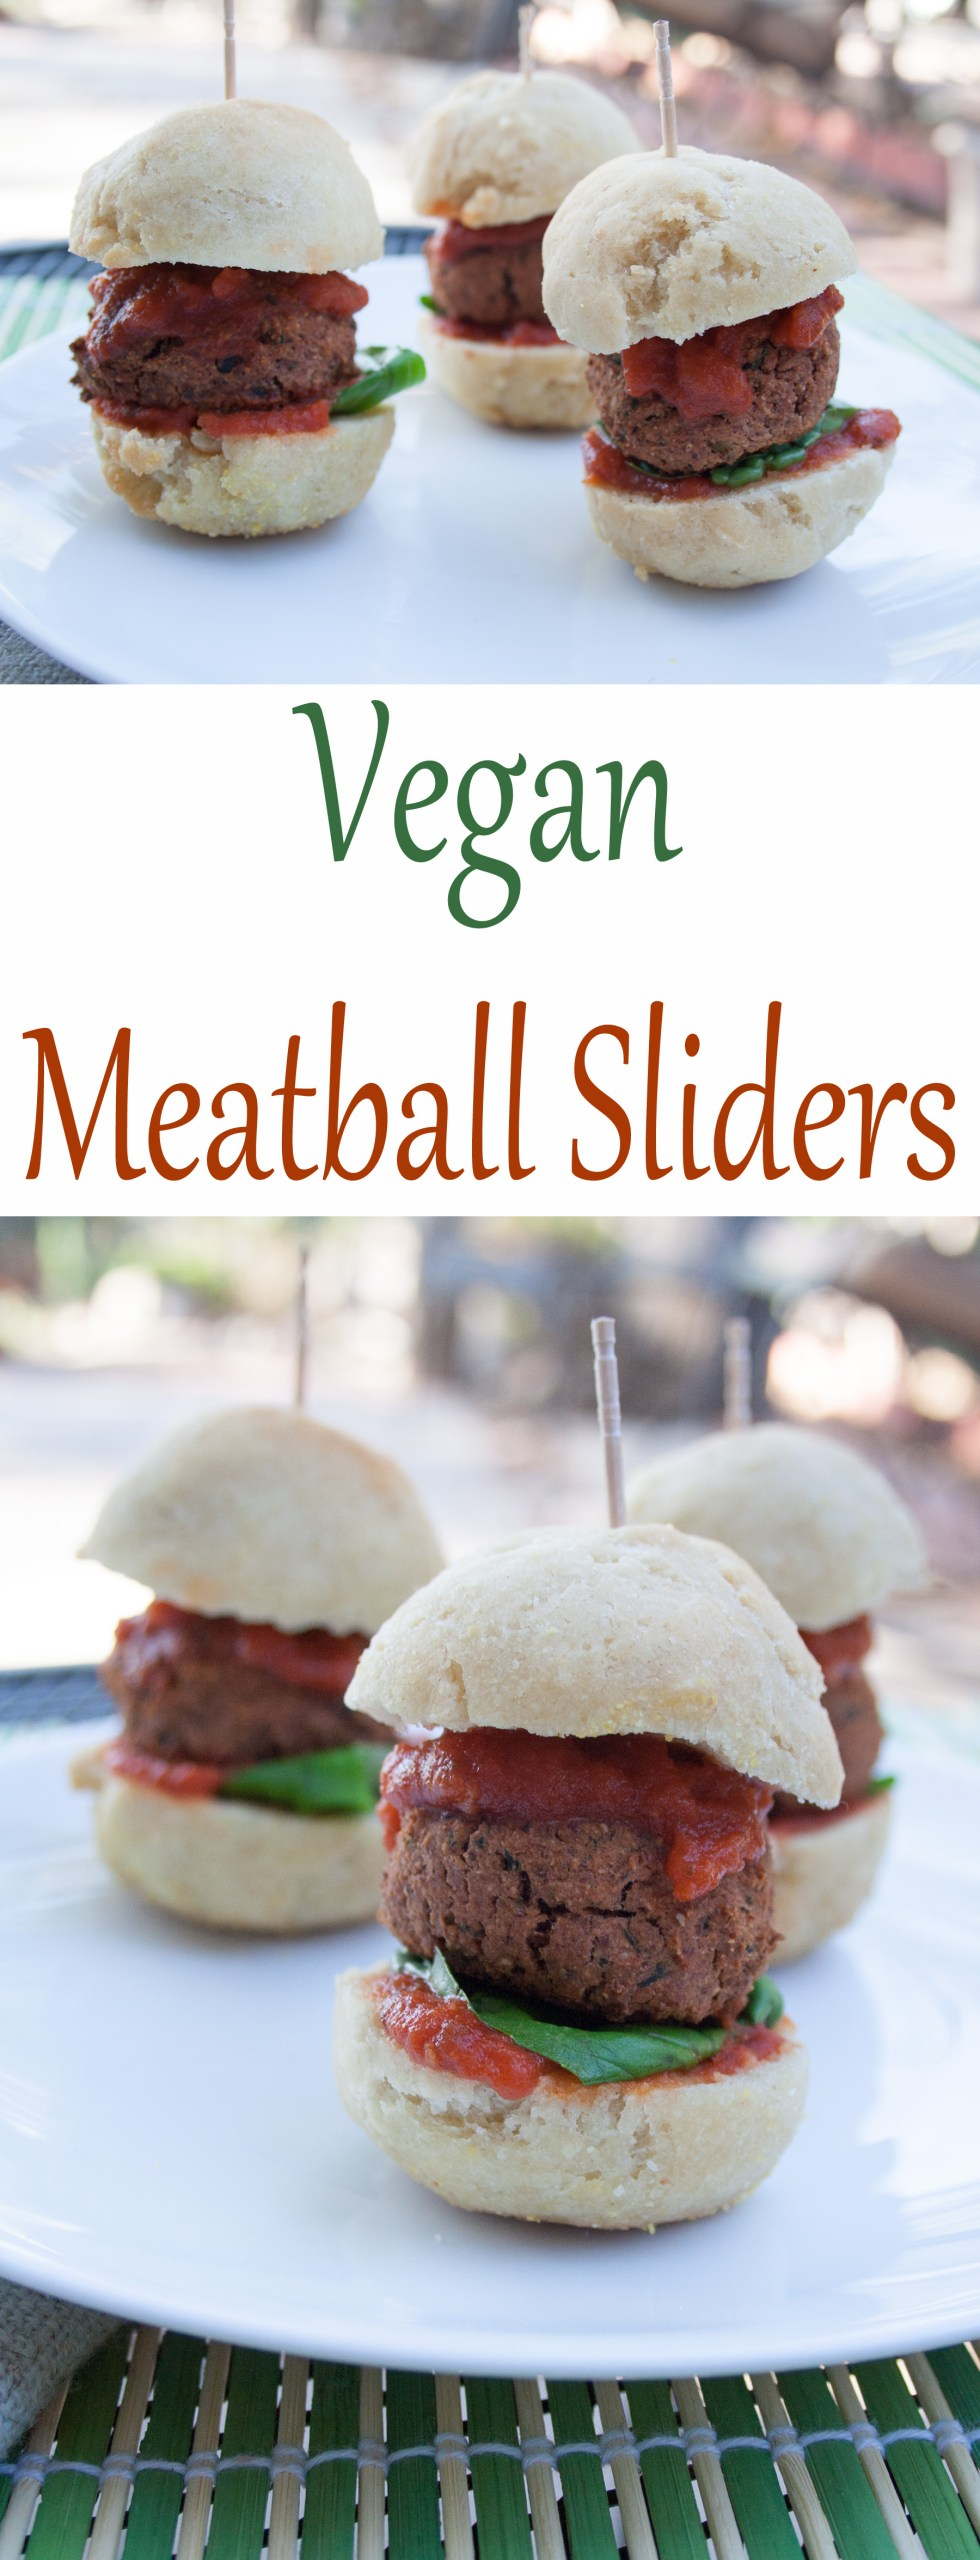 Vegan Meatball Sliders (vegan, gluten free) - These mini sliders are perfect for a party! They taste like pizza, but in meatball form!